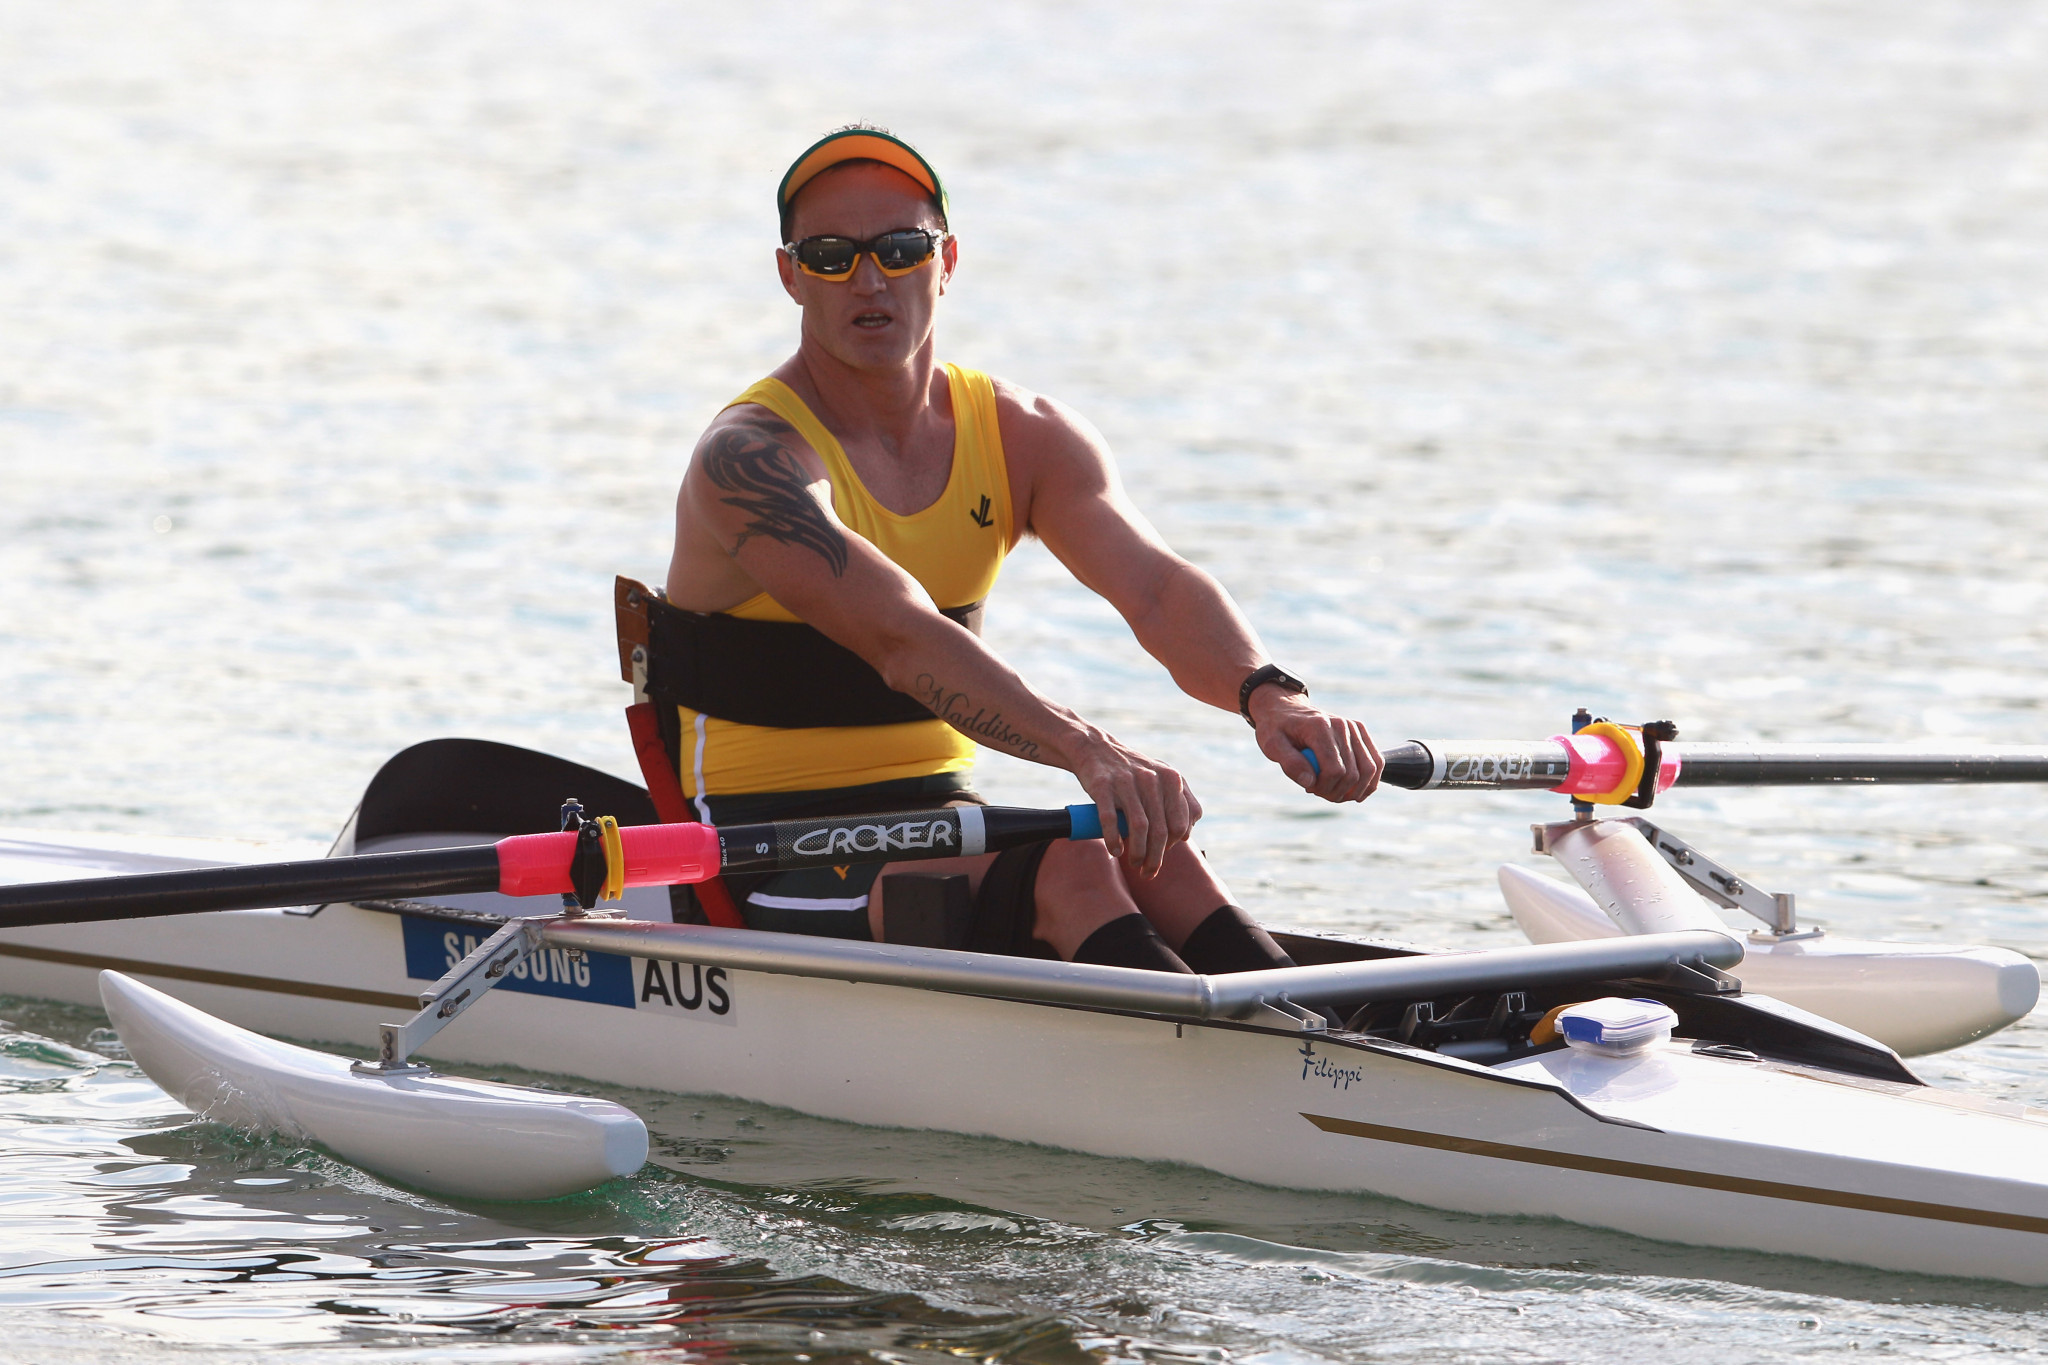 Australian rower Horrie among IPC Allianz Athlete of the Month nominees for September